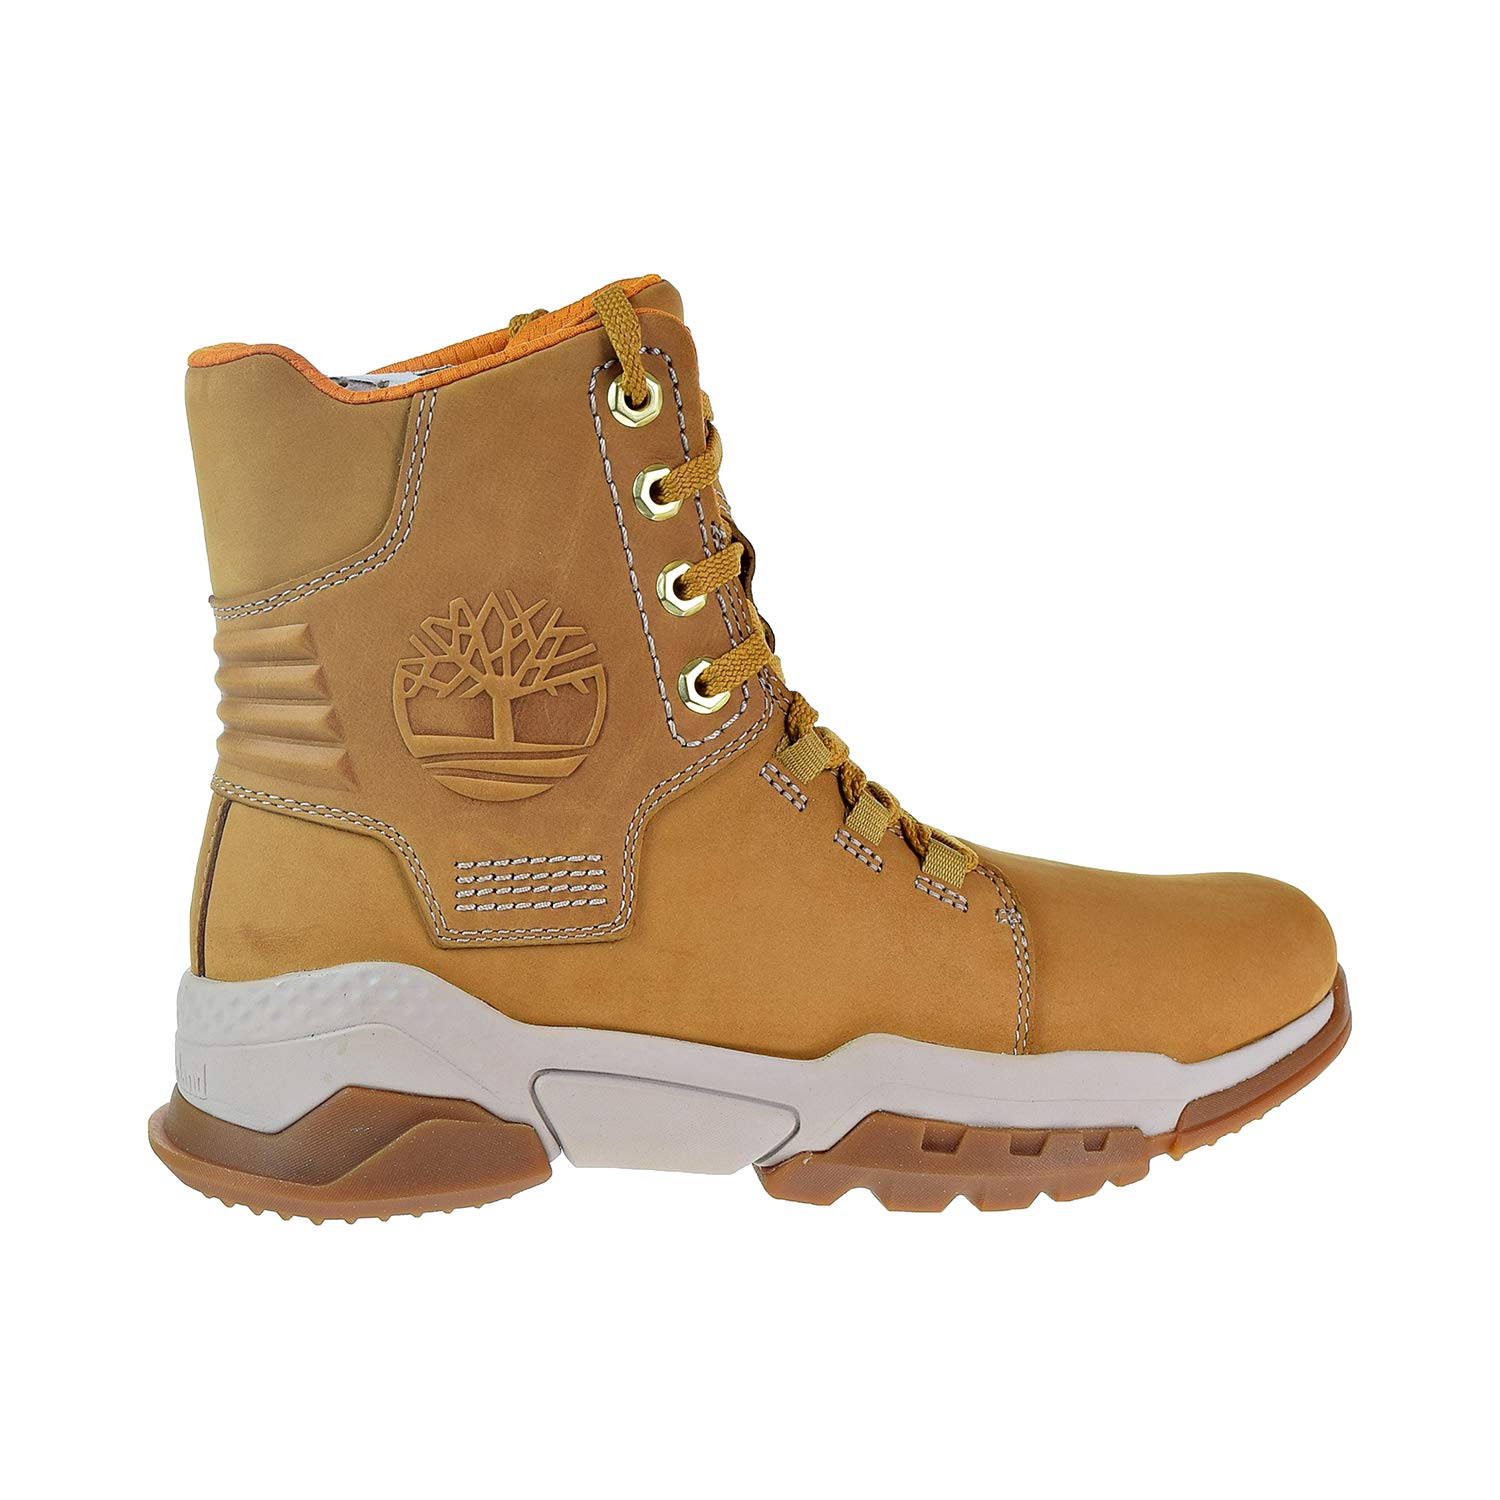 Timberland City Force Reveal Men's Boots Wheat Nubuck tb0a1z5s